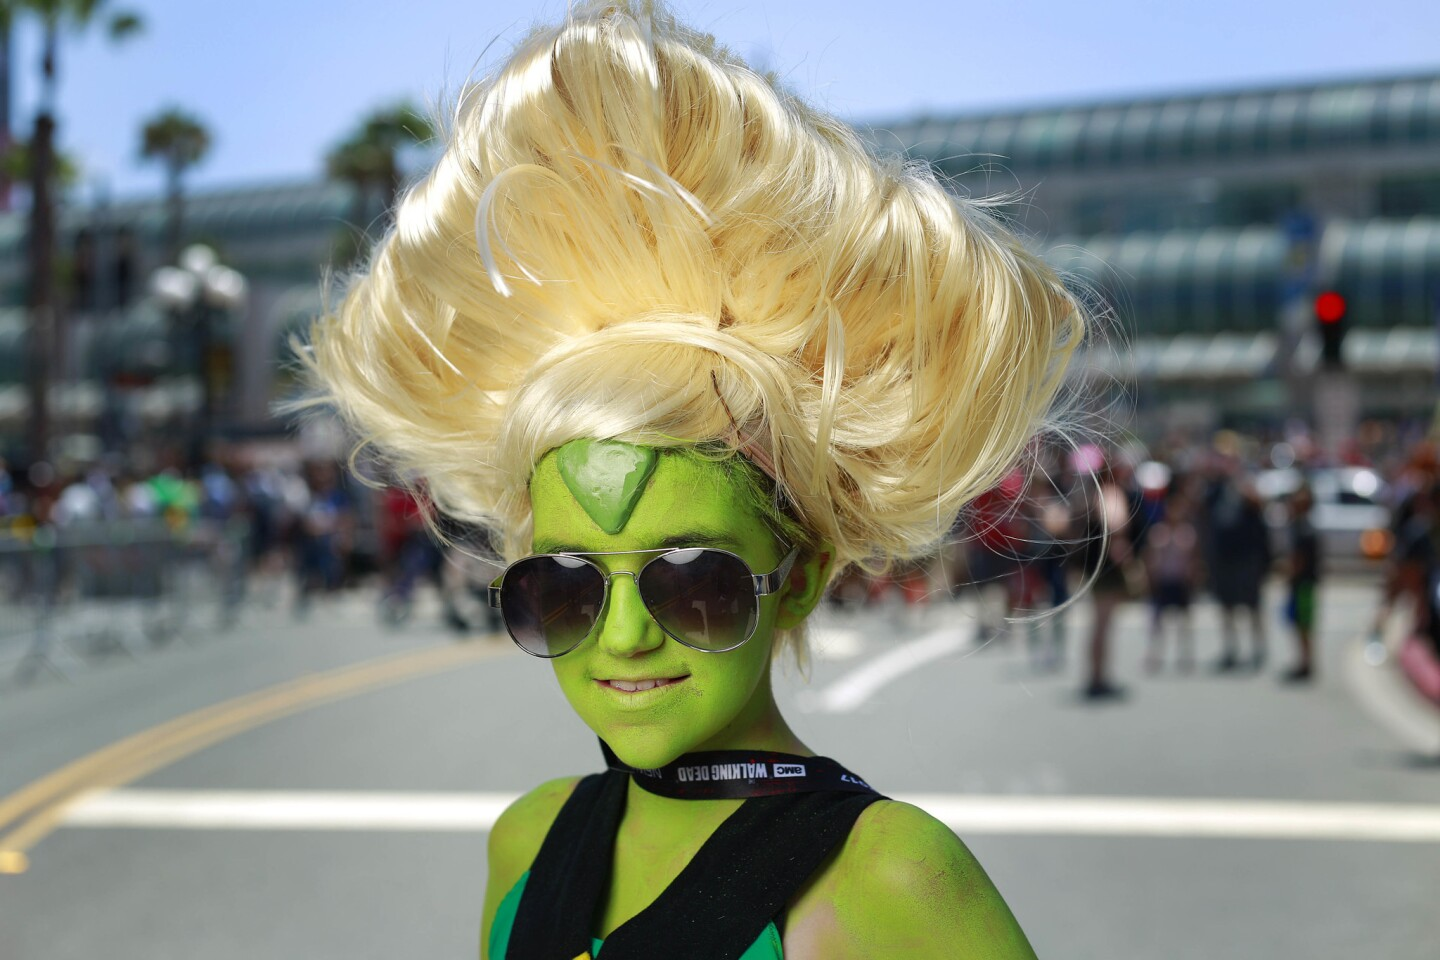 Sabrina Welke of Simi Valley dressed as Peridot at Comic-Con in San Diego on July 20, 2017. (Photo by K.C. Alfred/The San Diego Union-Tribune)